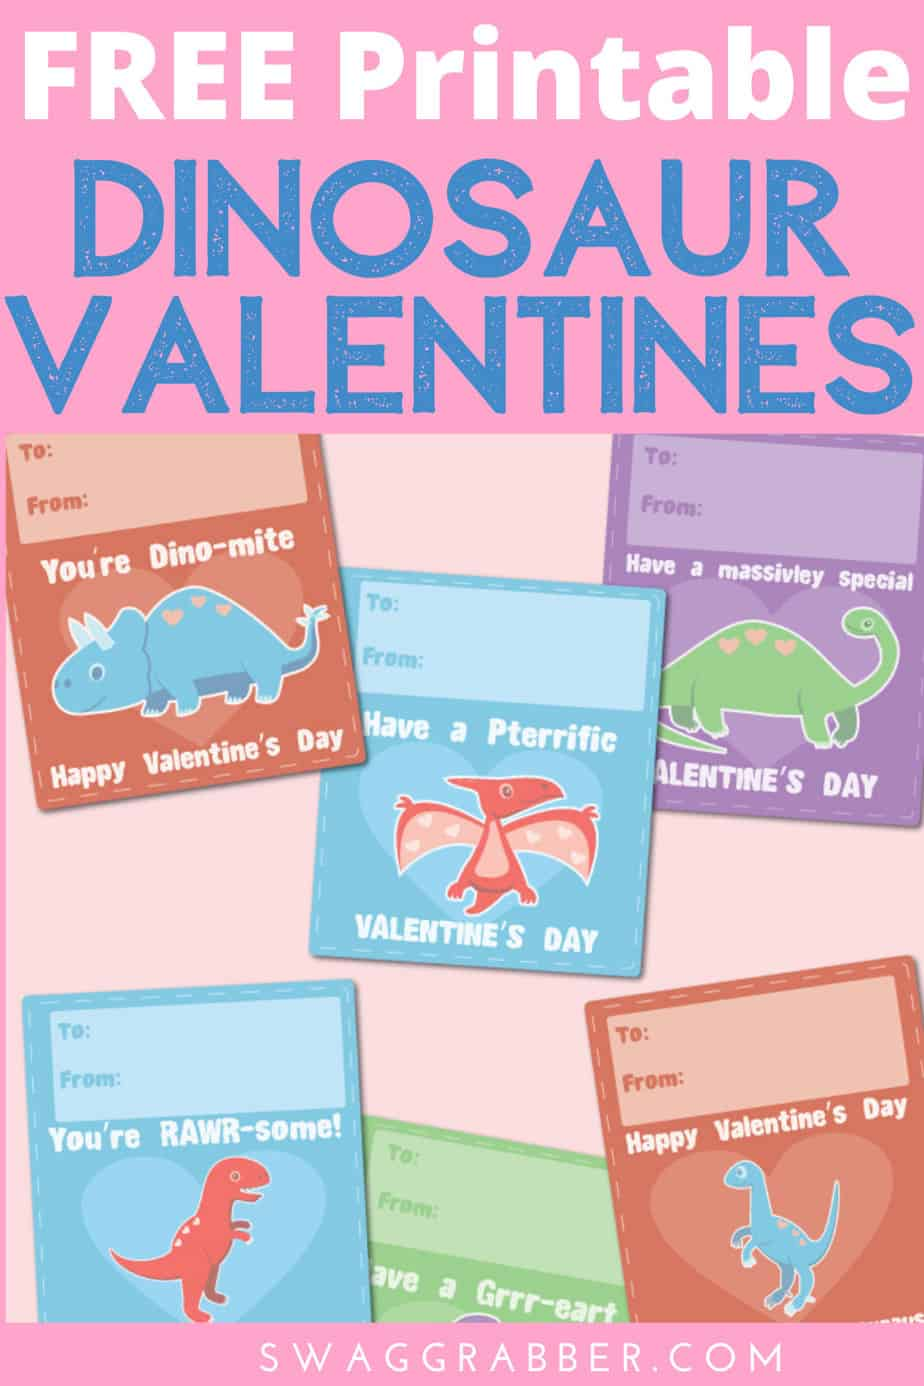 FREE Printable Dinosaur Valentine's Day Cards for School